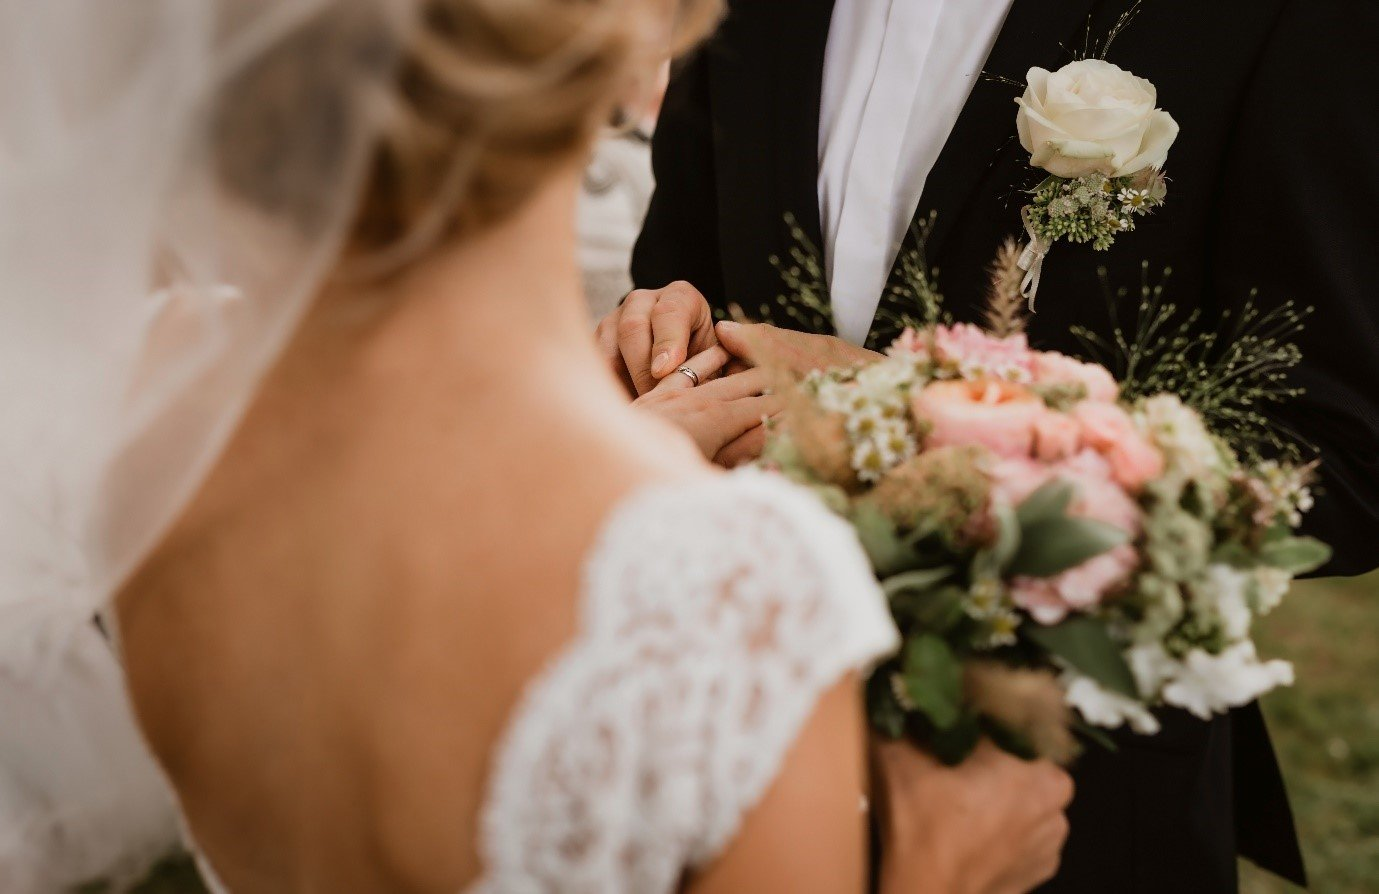 Reasons for Trusts - MGF Wills - Re-marriage